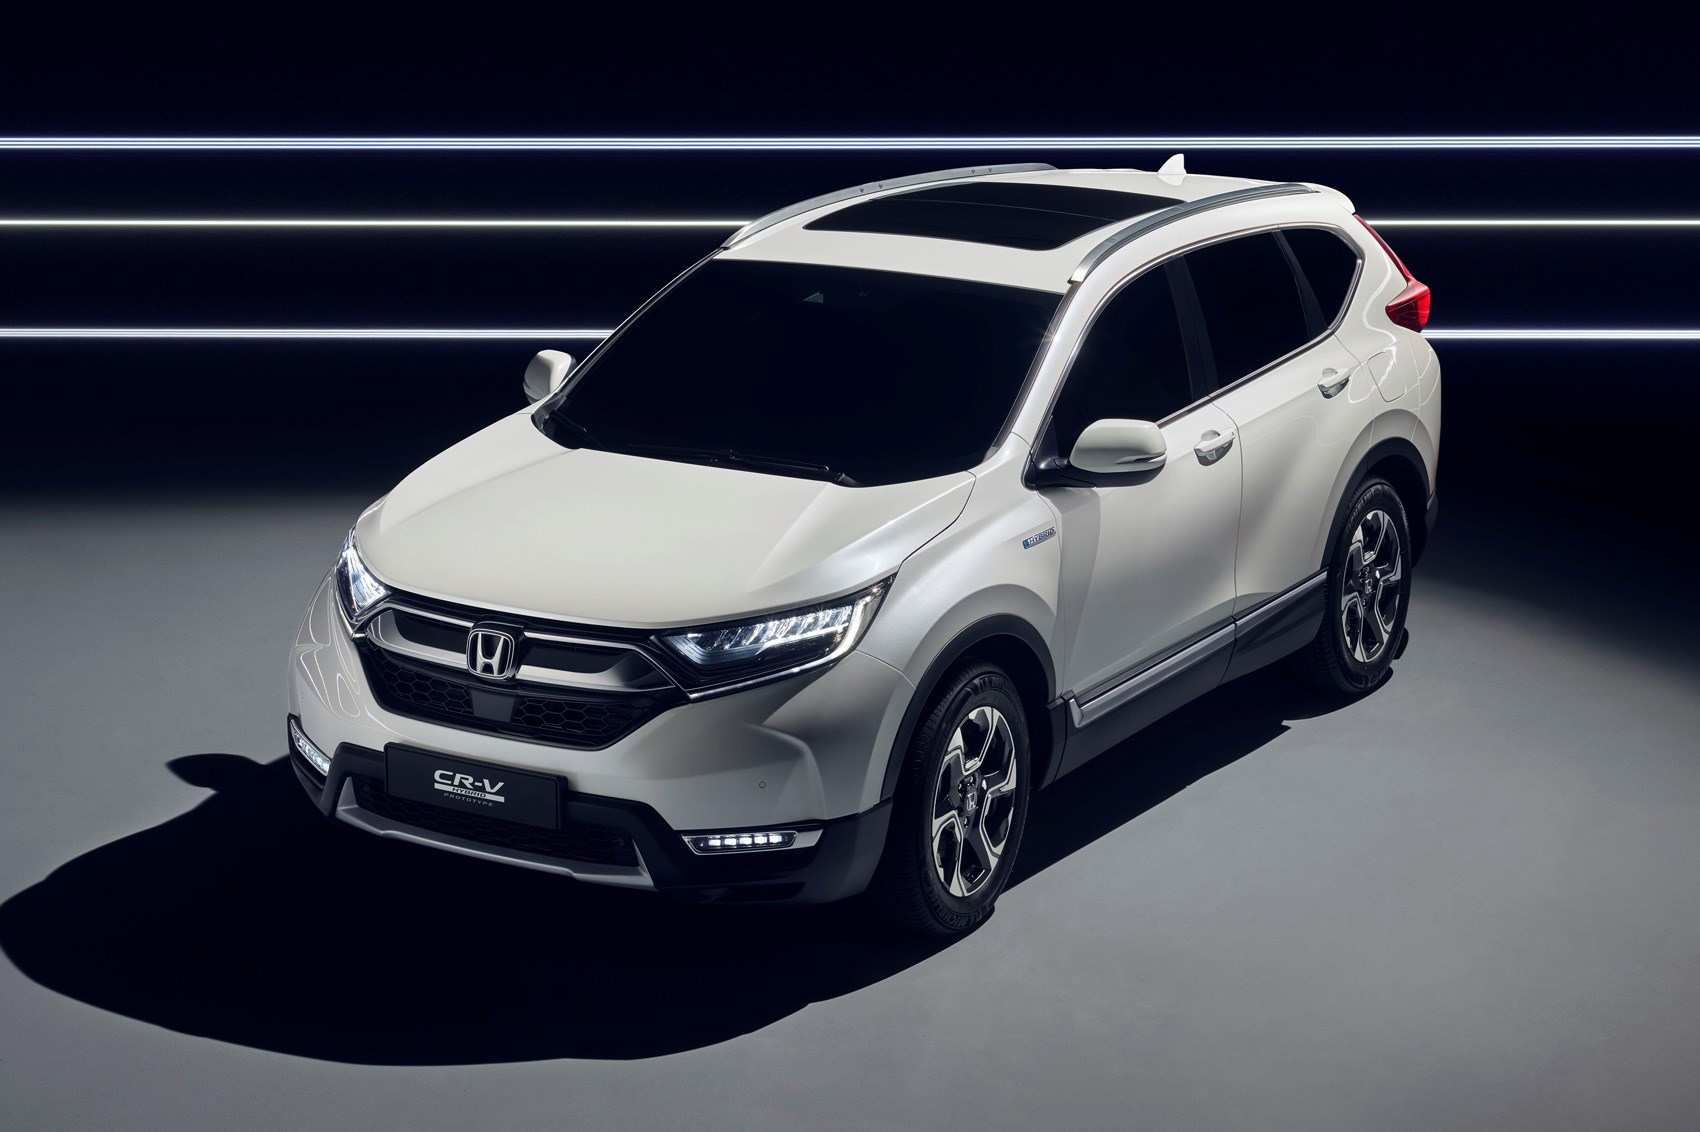 83 All New Honda Vezel Hybrid 2020 Reviews